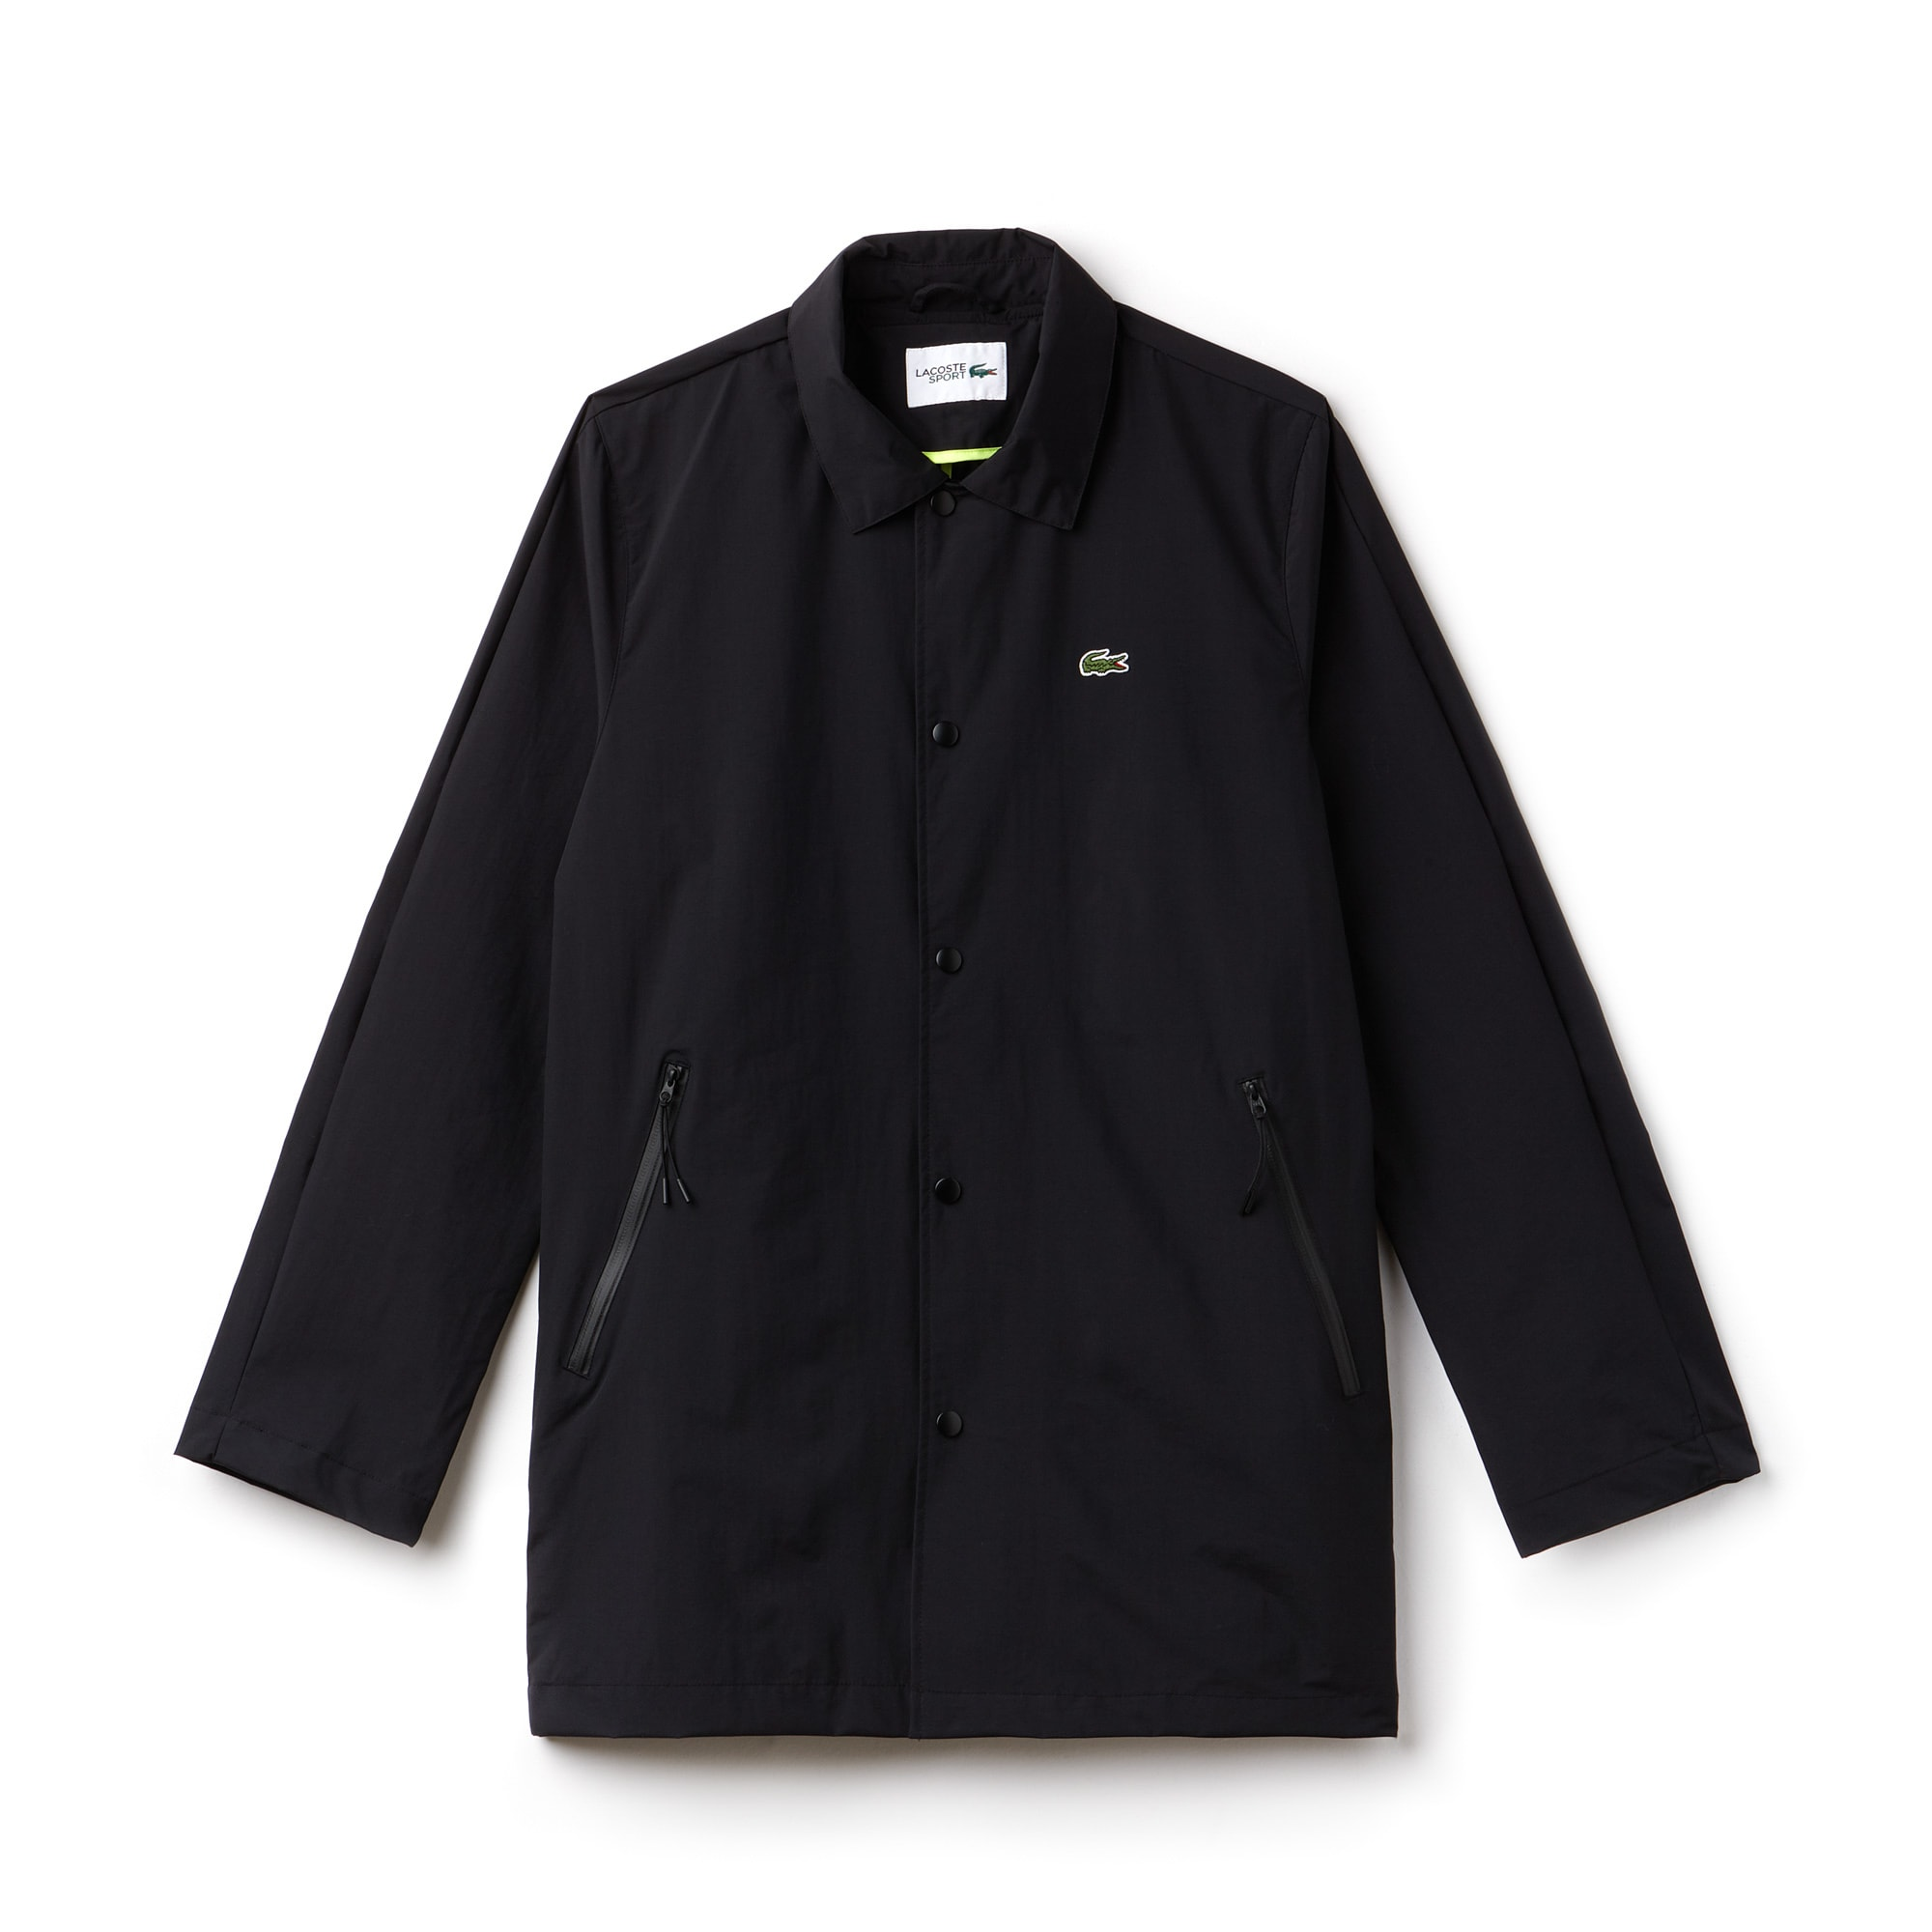 Men's Lacoste SPORT Coated Twill Raincoat